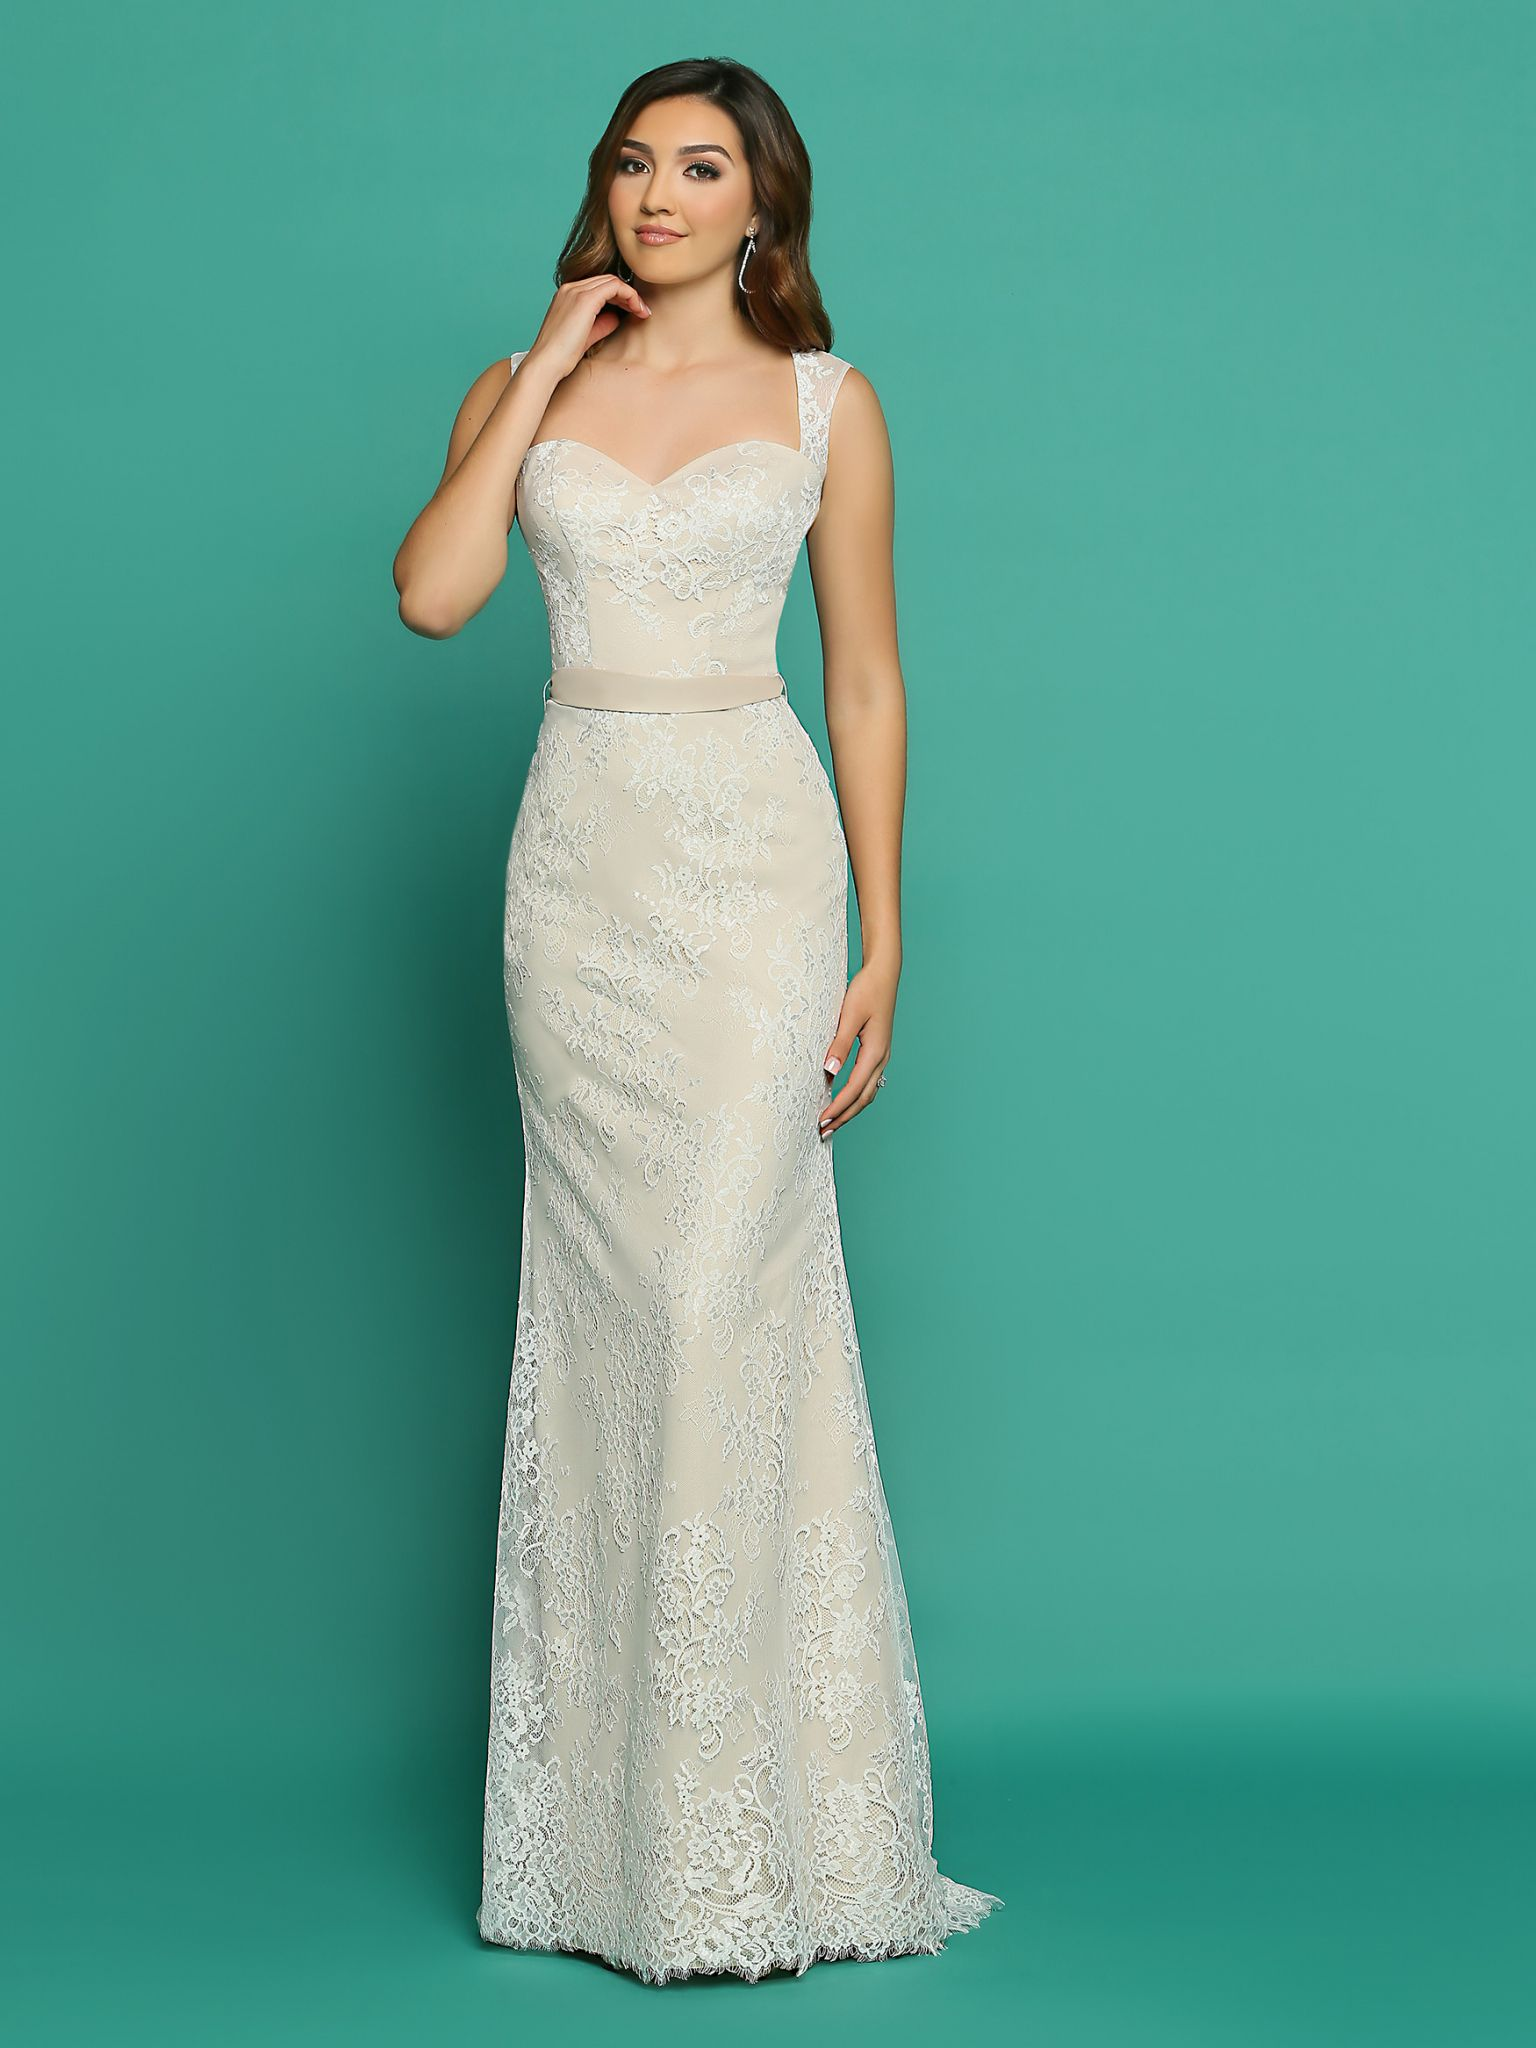 Nice Simple Wedding Dresses For Plus Size Gift - Womens Dresses ...